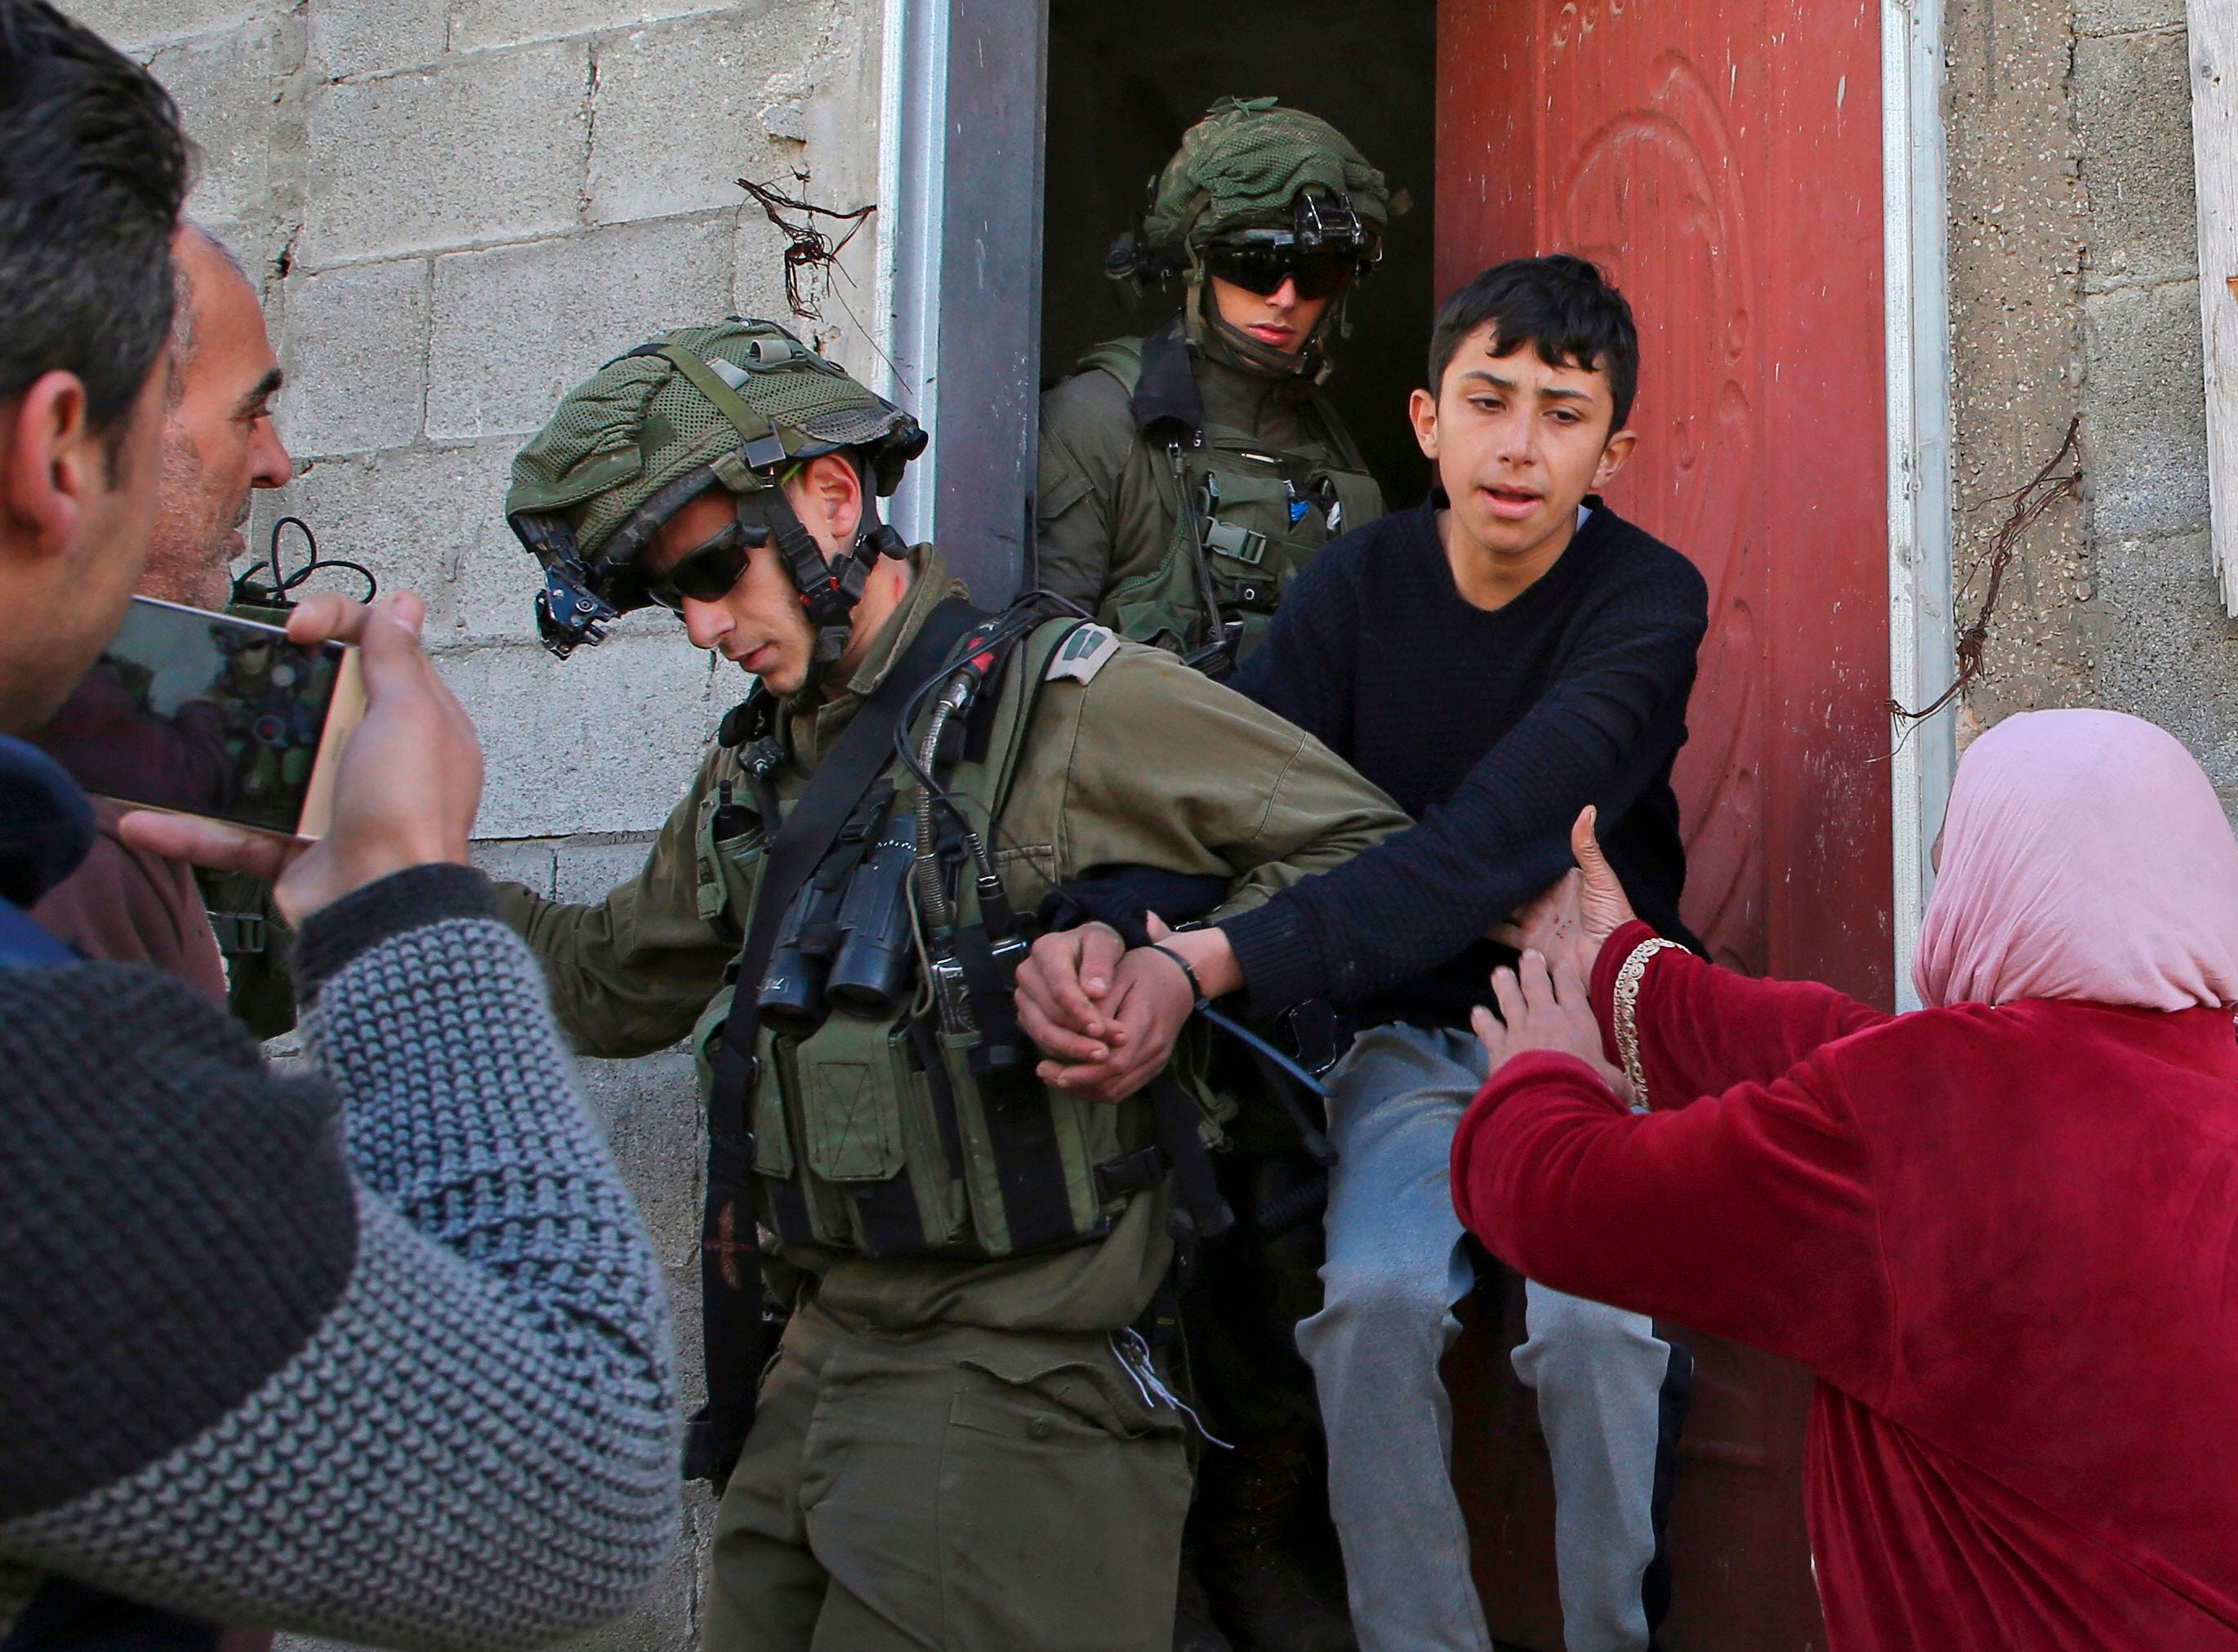 Israeli soldiers a Palestinian youth into custody as a Palestinian woman protests following a demonstration against the expropriation of Palestinian lands by Israel in the village of Kfar Qaddum, near Nablus in the occupied West Bank, on Jan. 18, 2019.